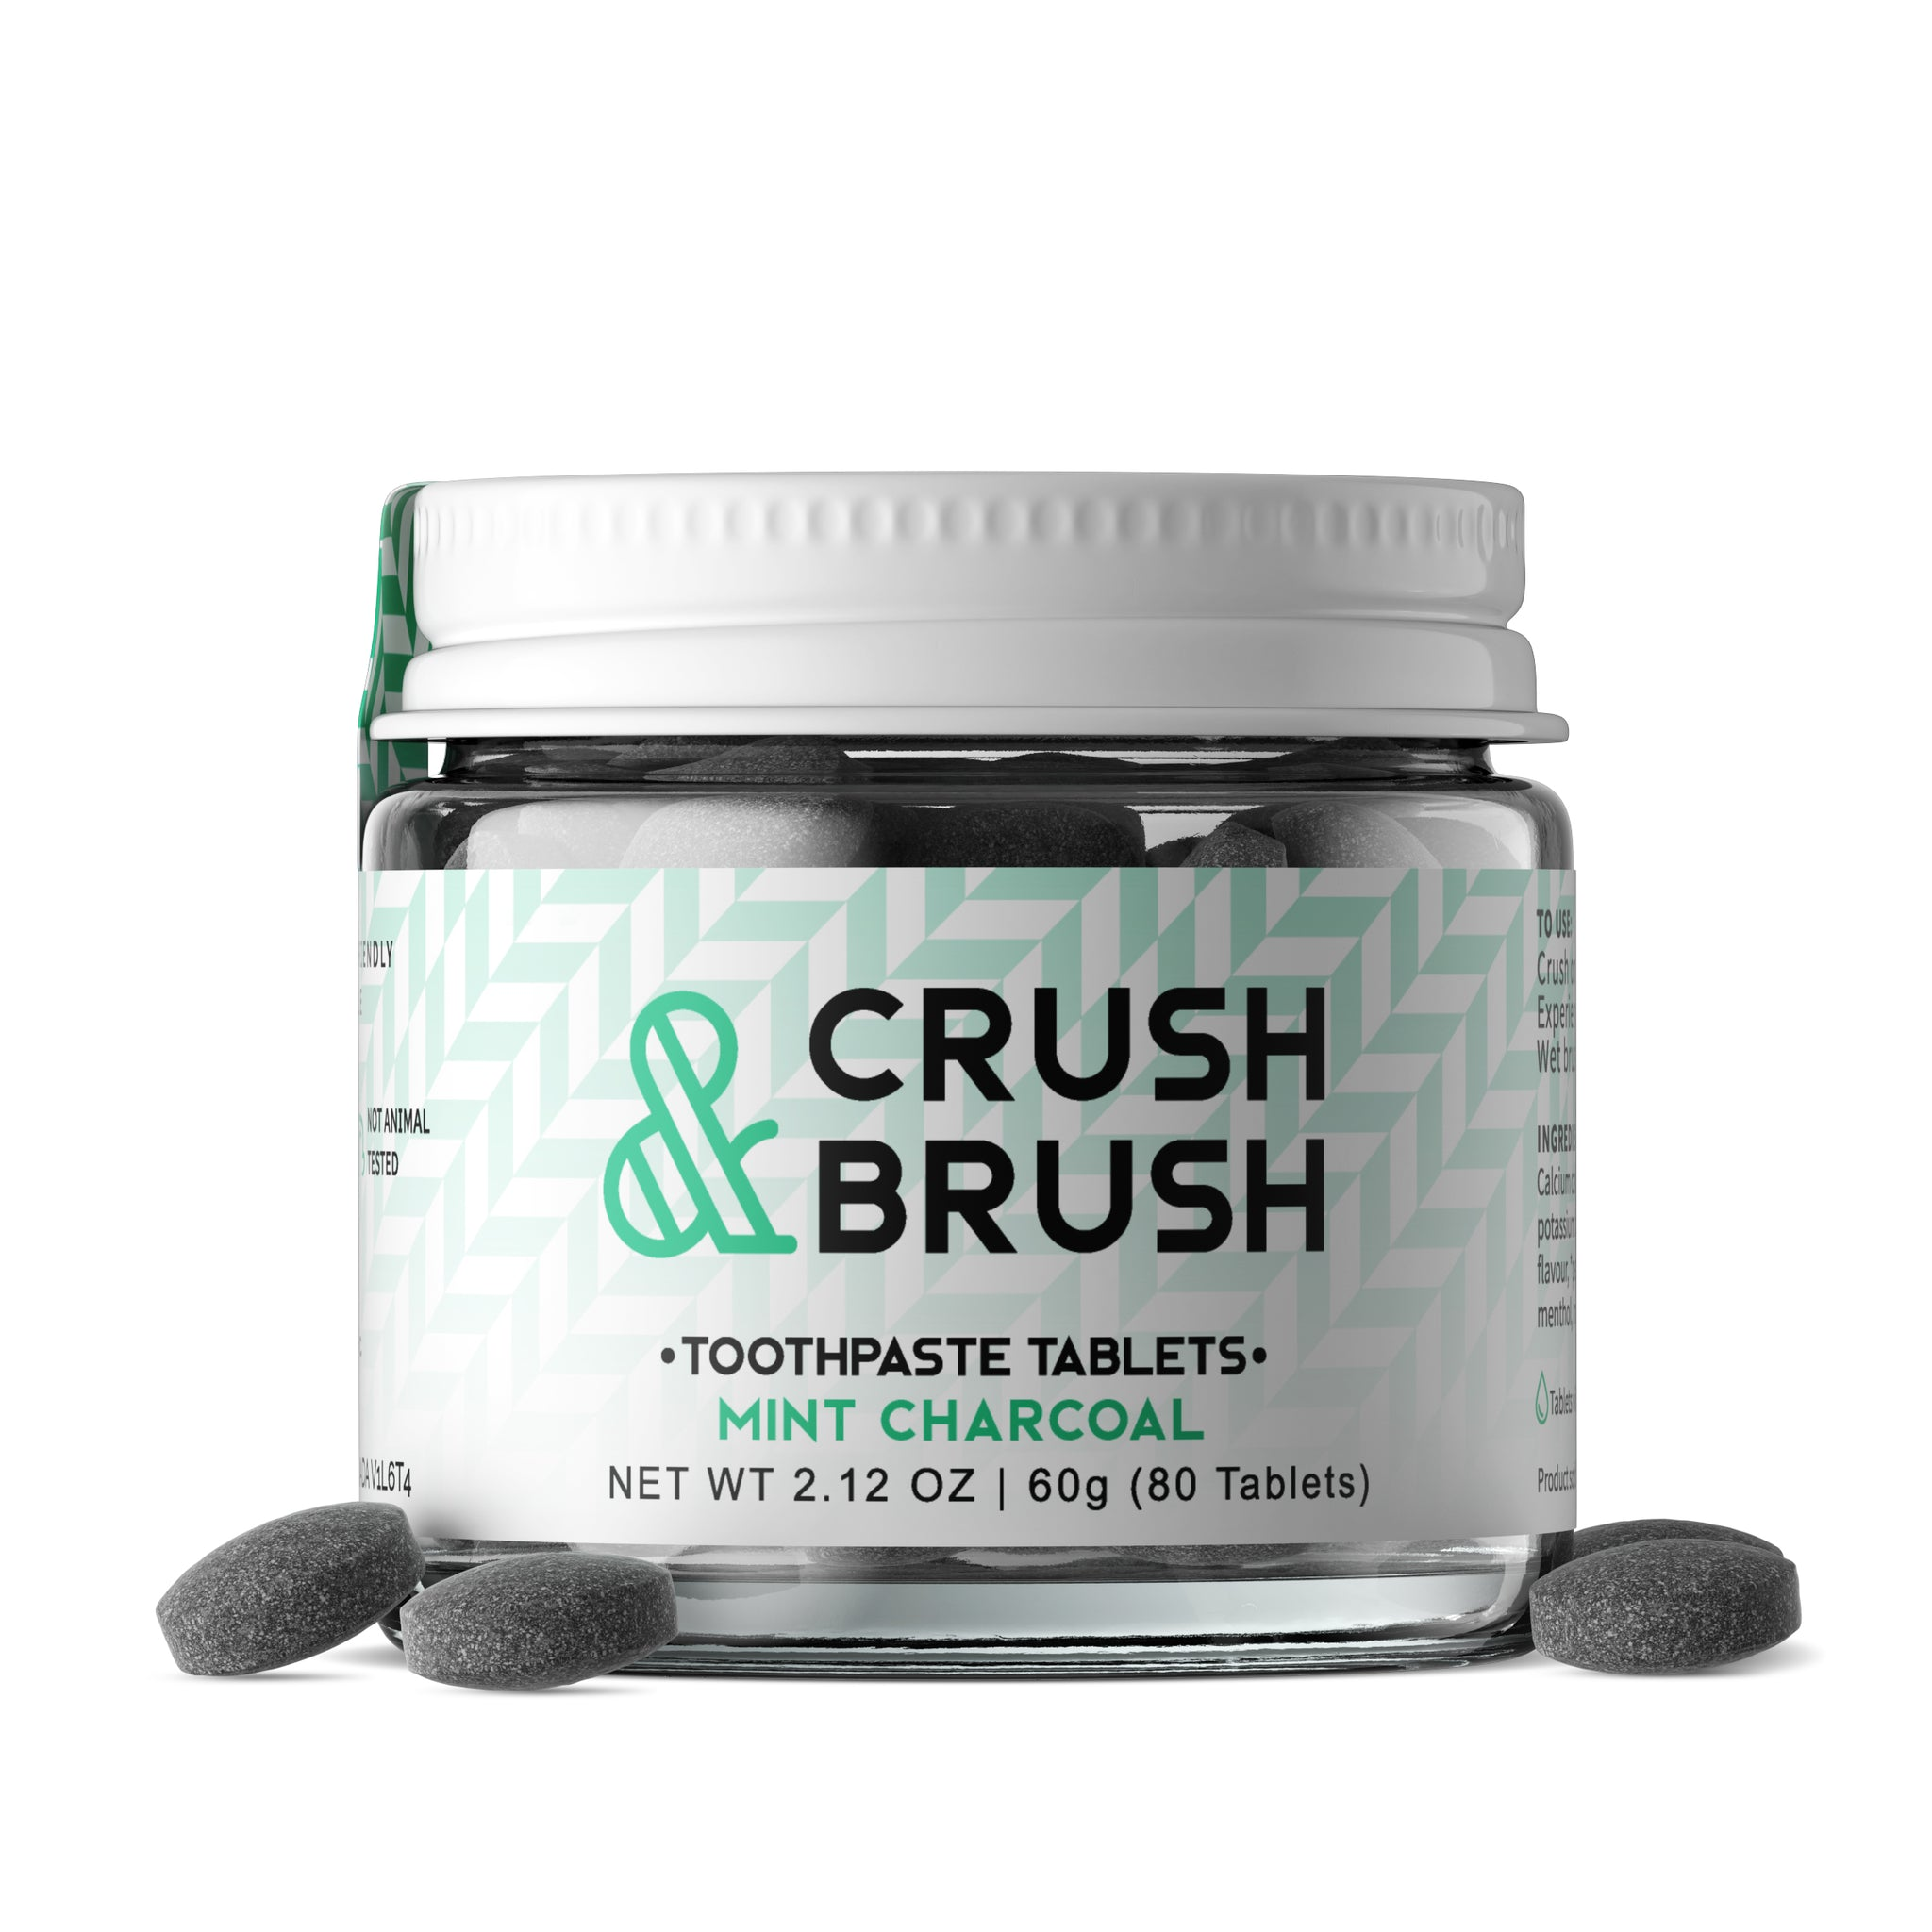 Crush & Brush CHARCOAL mint - 60g ~ 80 Tablets